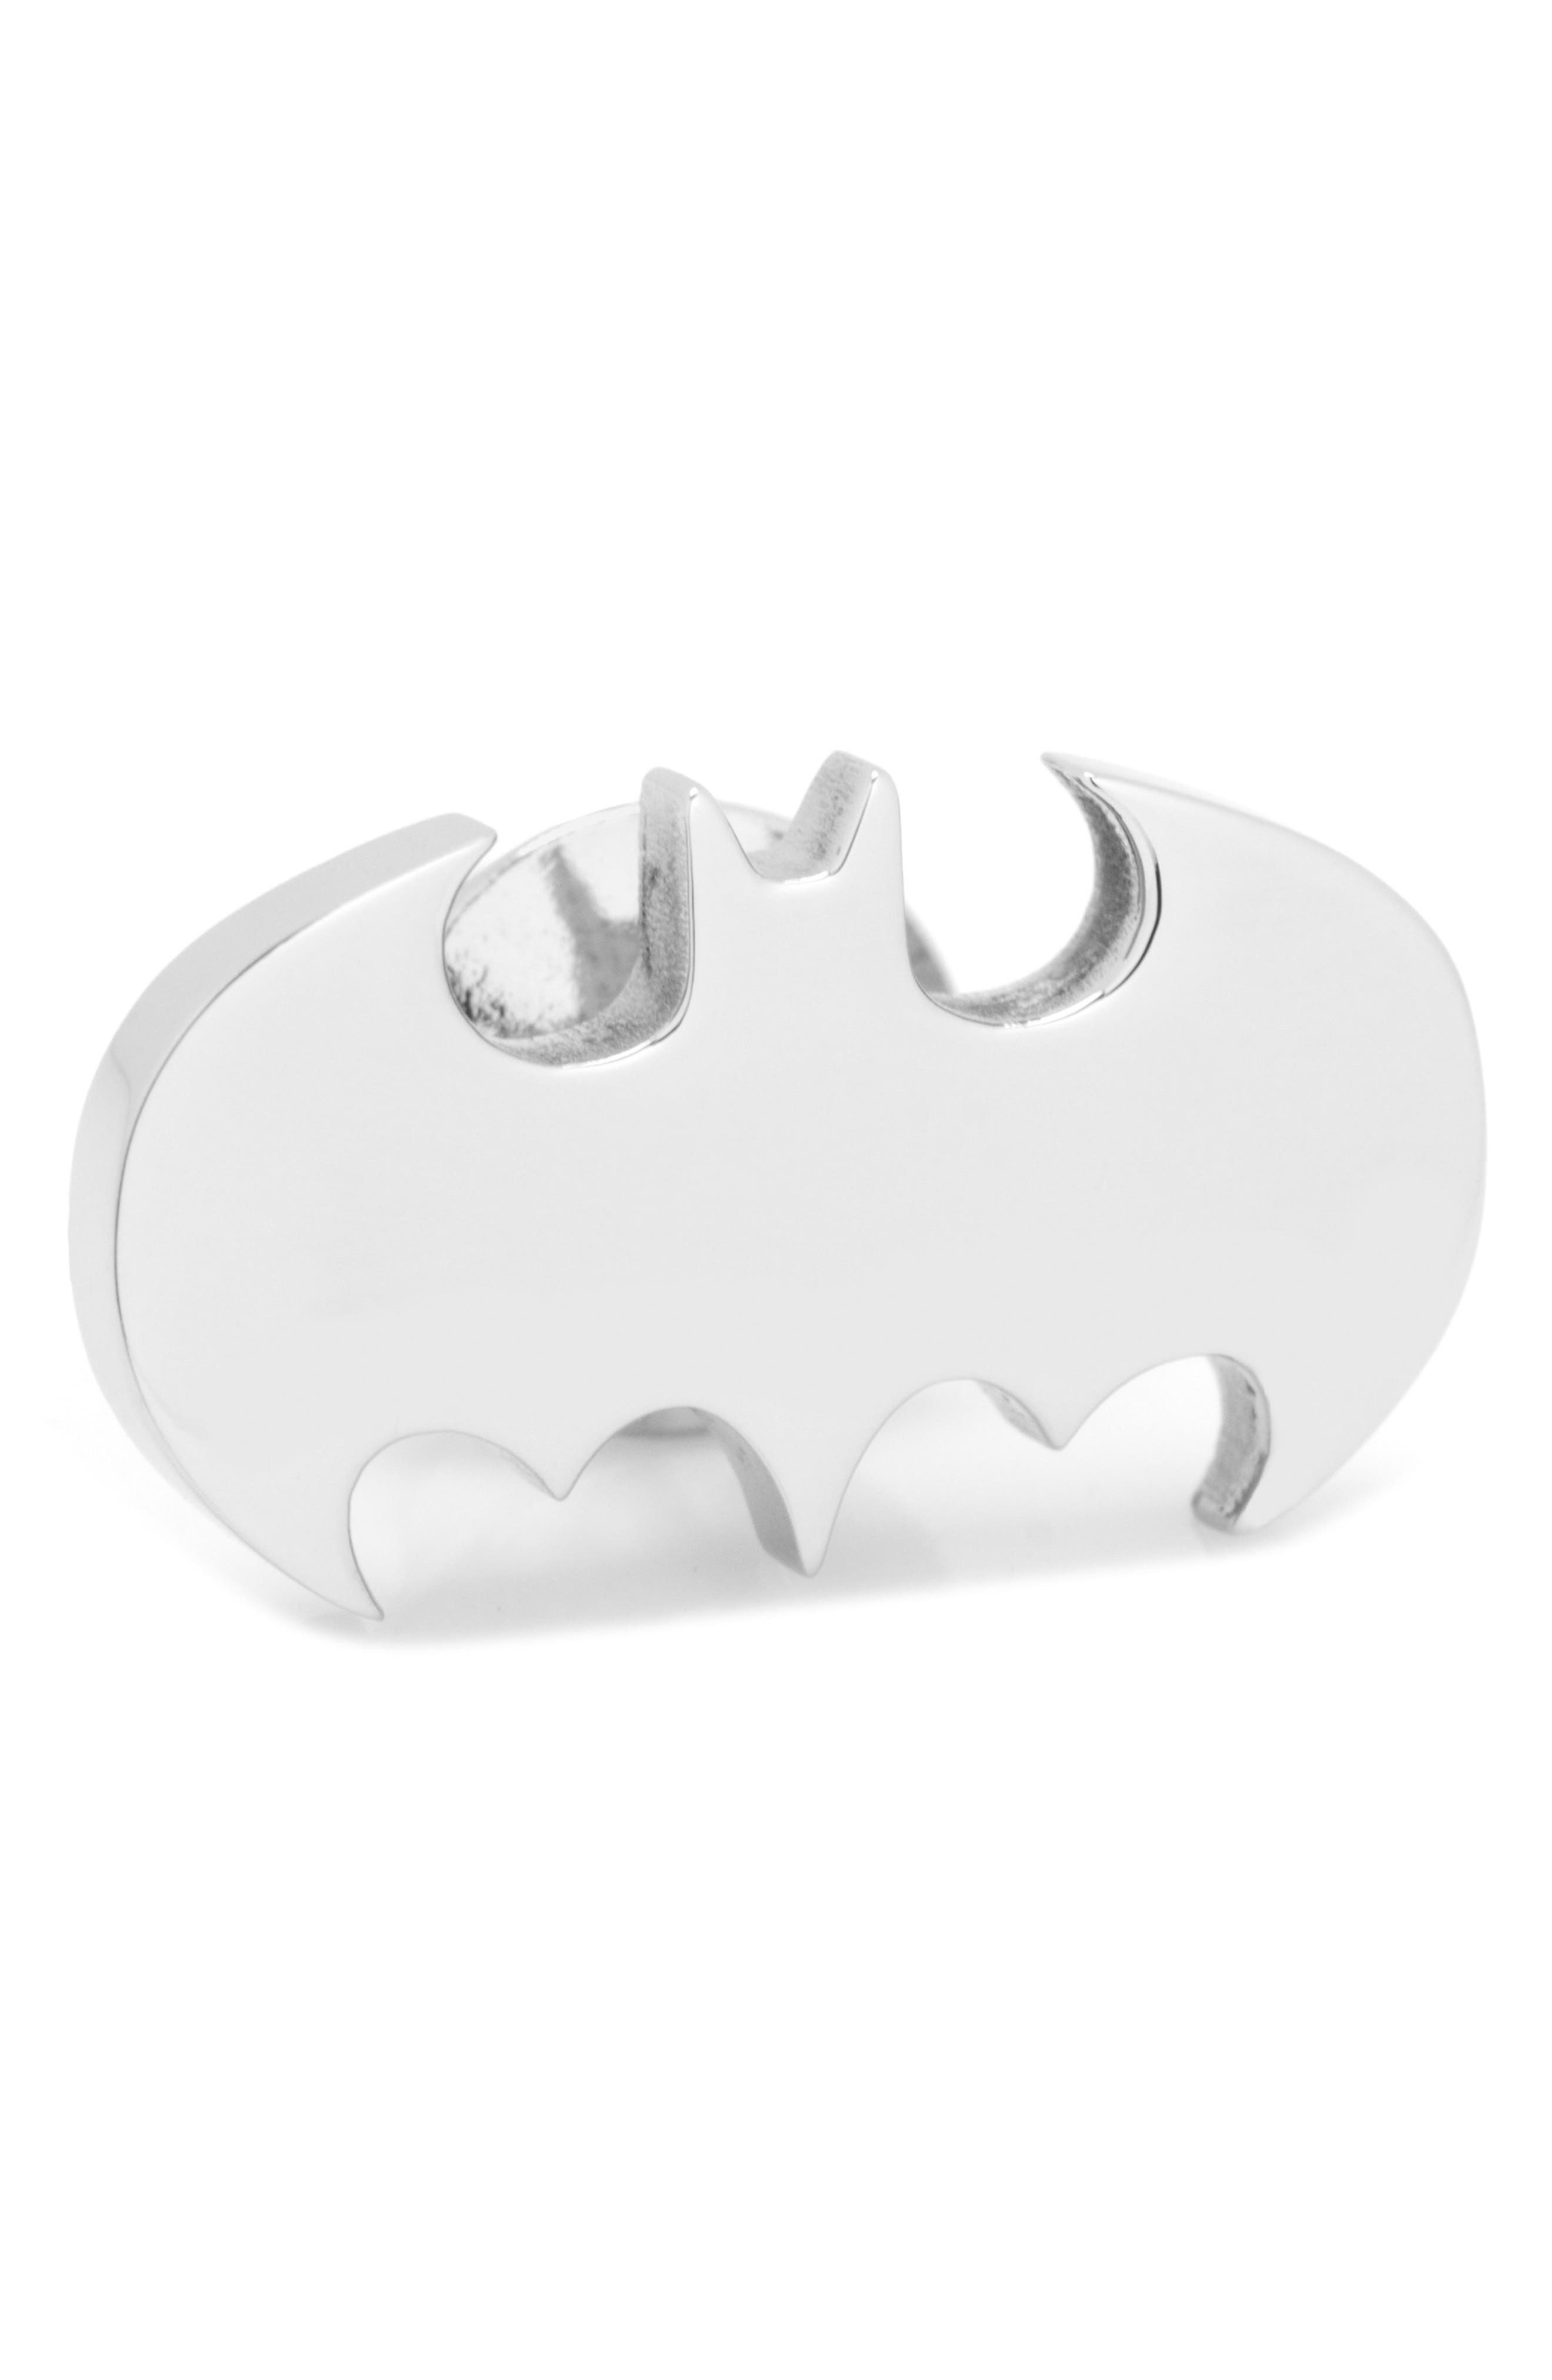 Batman Lapel Pin,                             Main thumbnail 1, color,                             SILVER